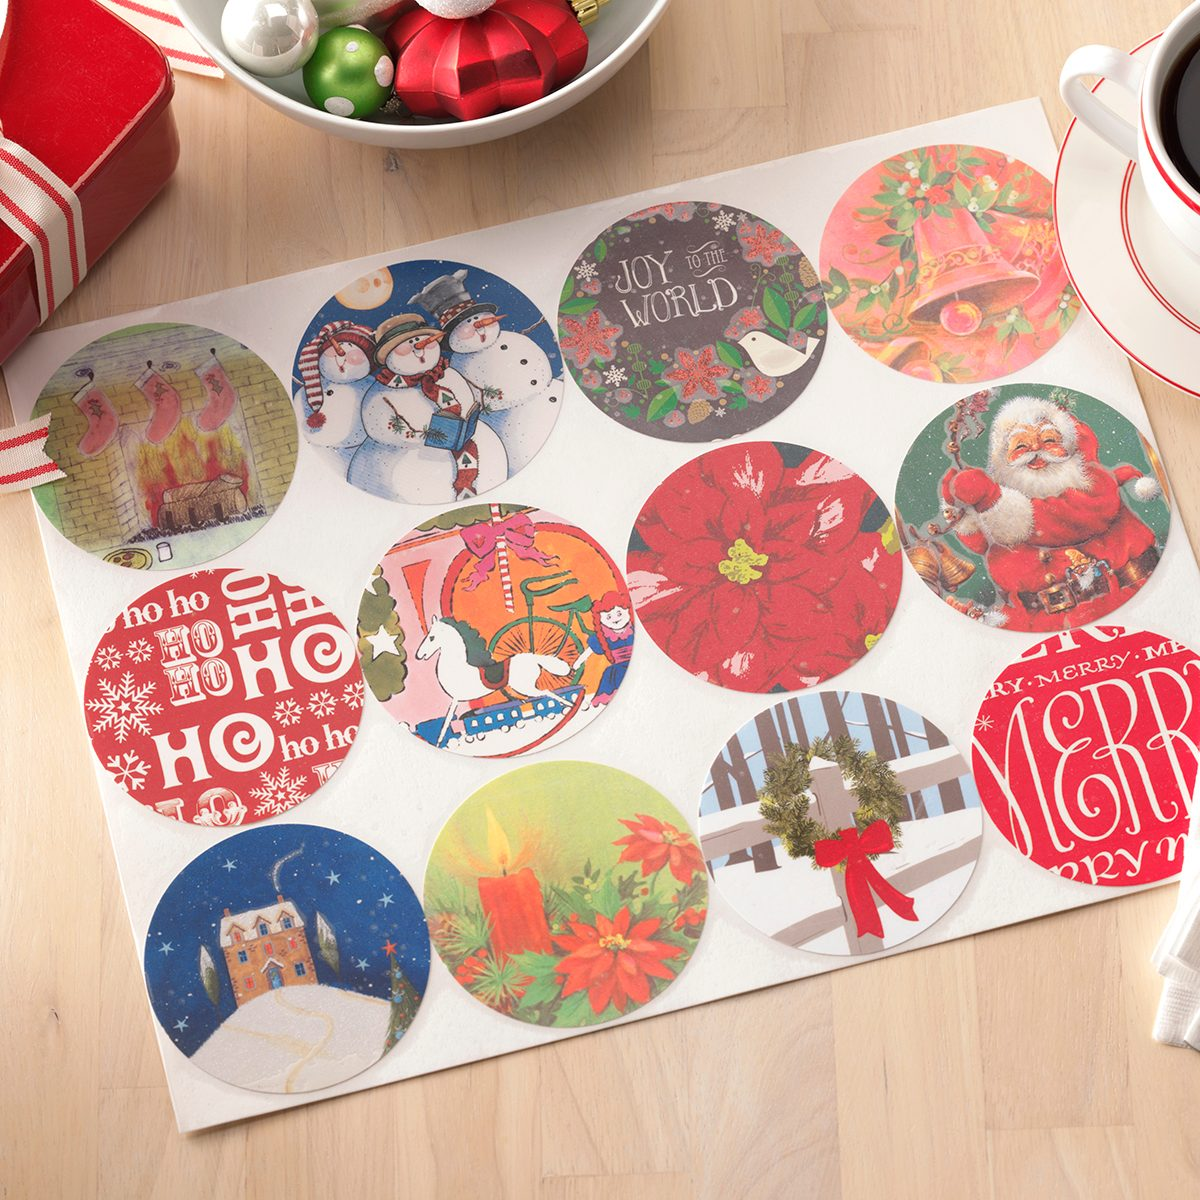 placemats from repurposed Christmas cards